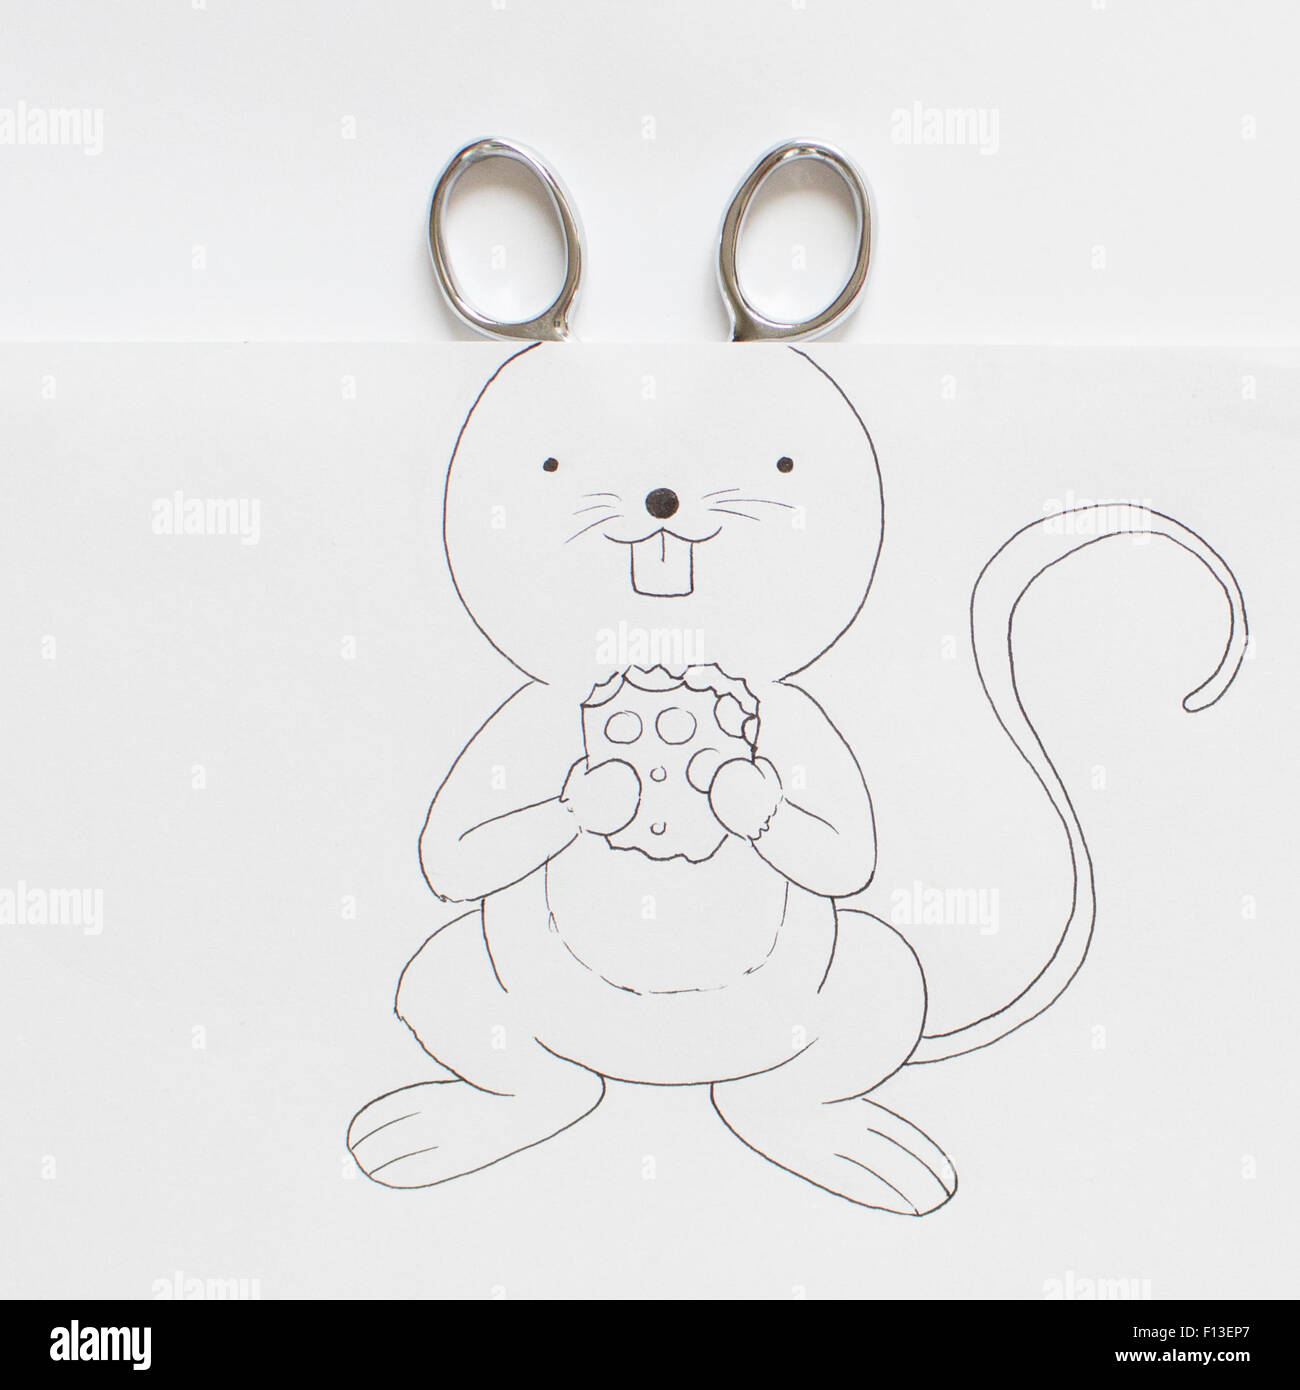 Conceptual drawing of a mouse holding cheese - Stock Image